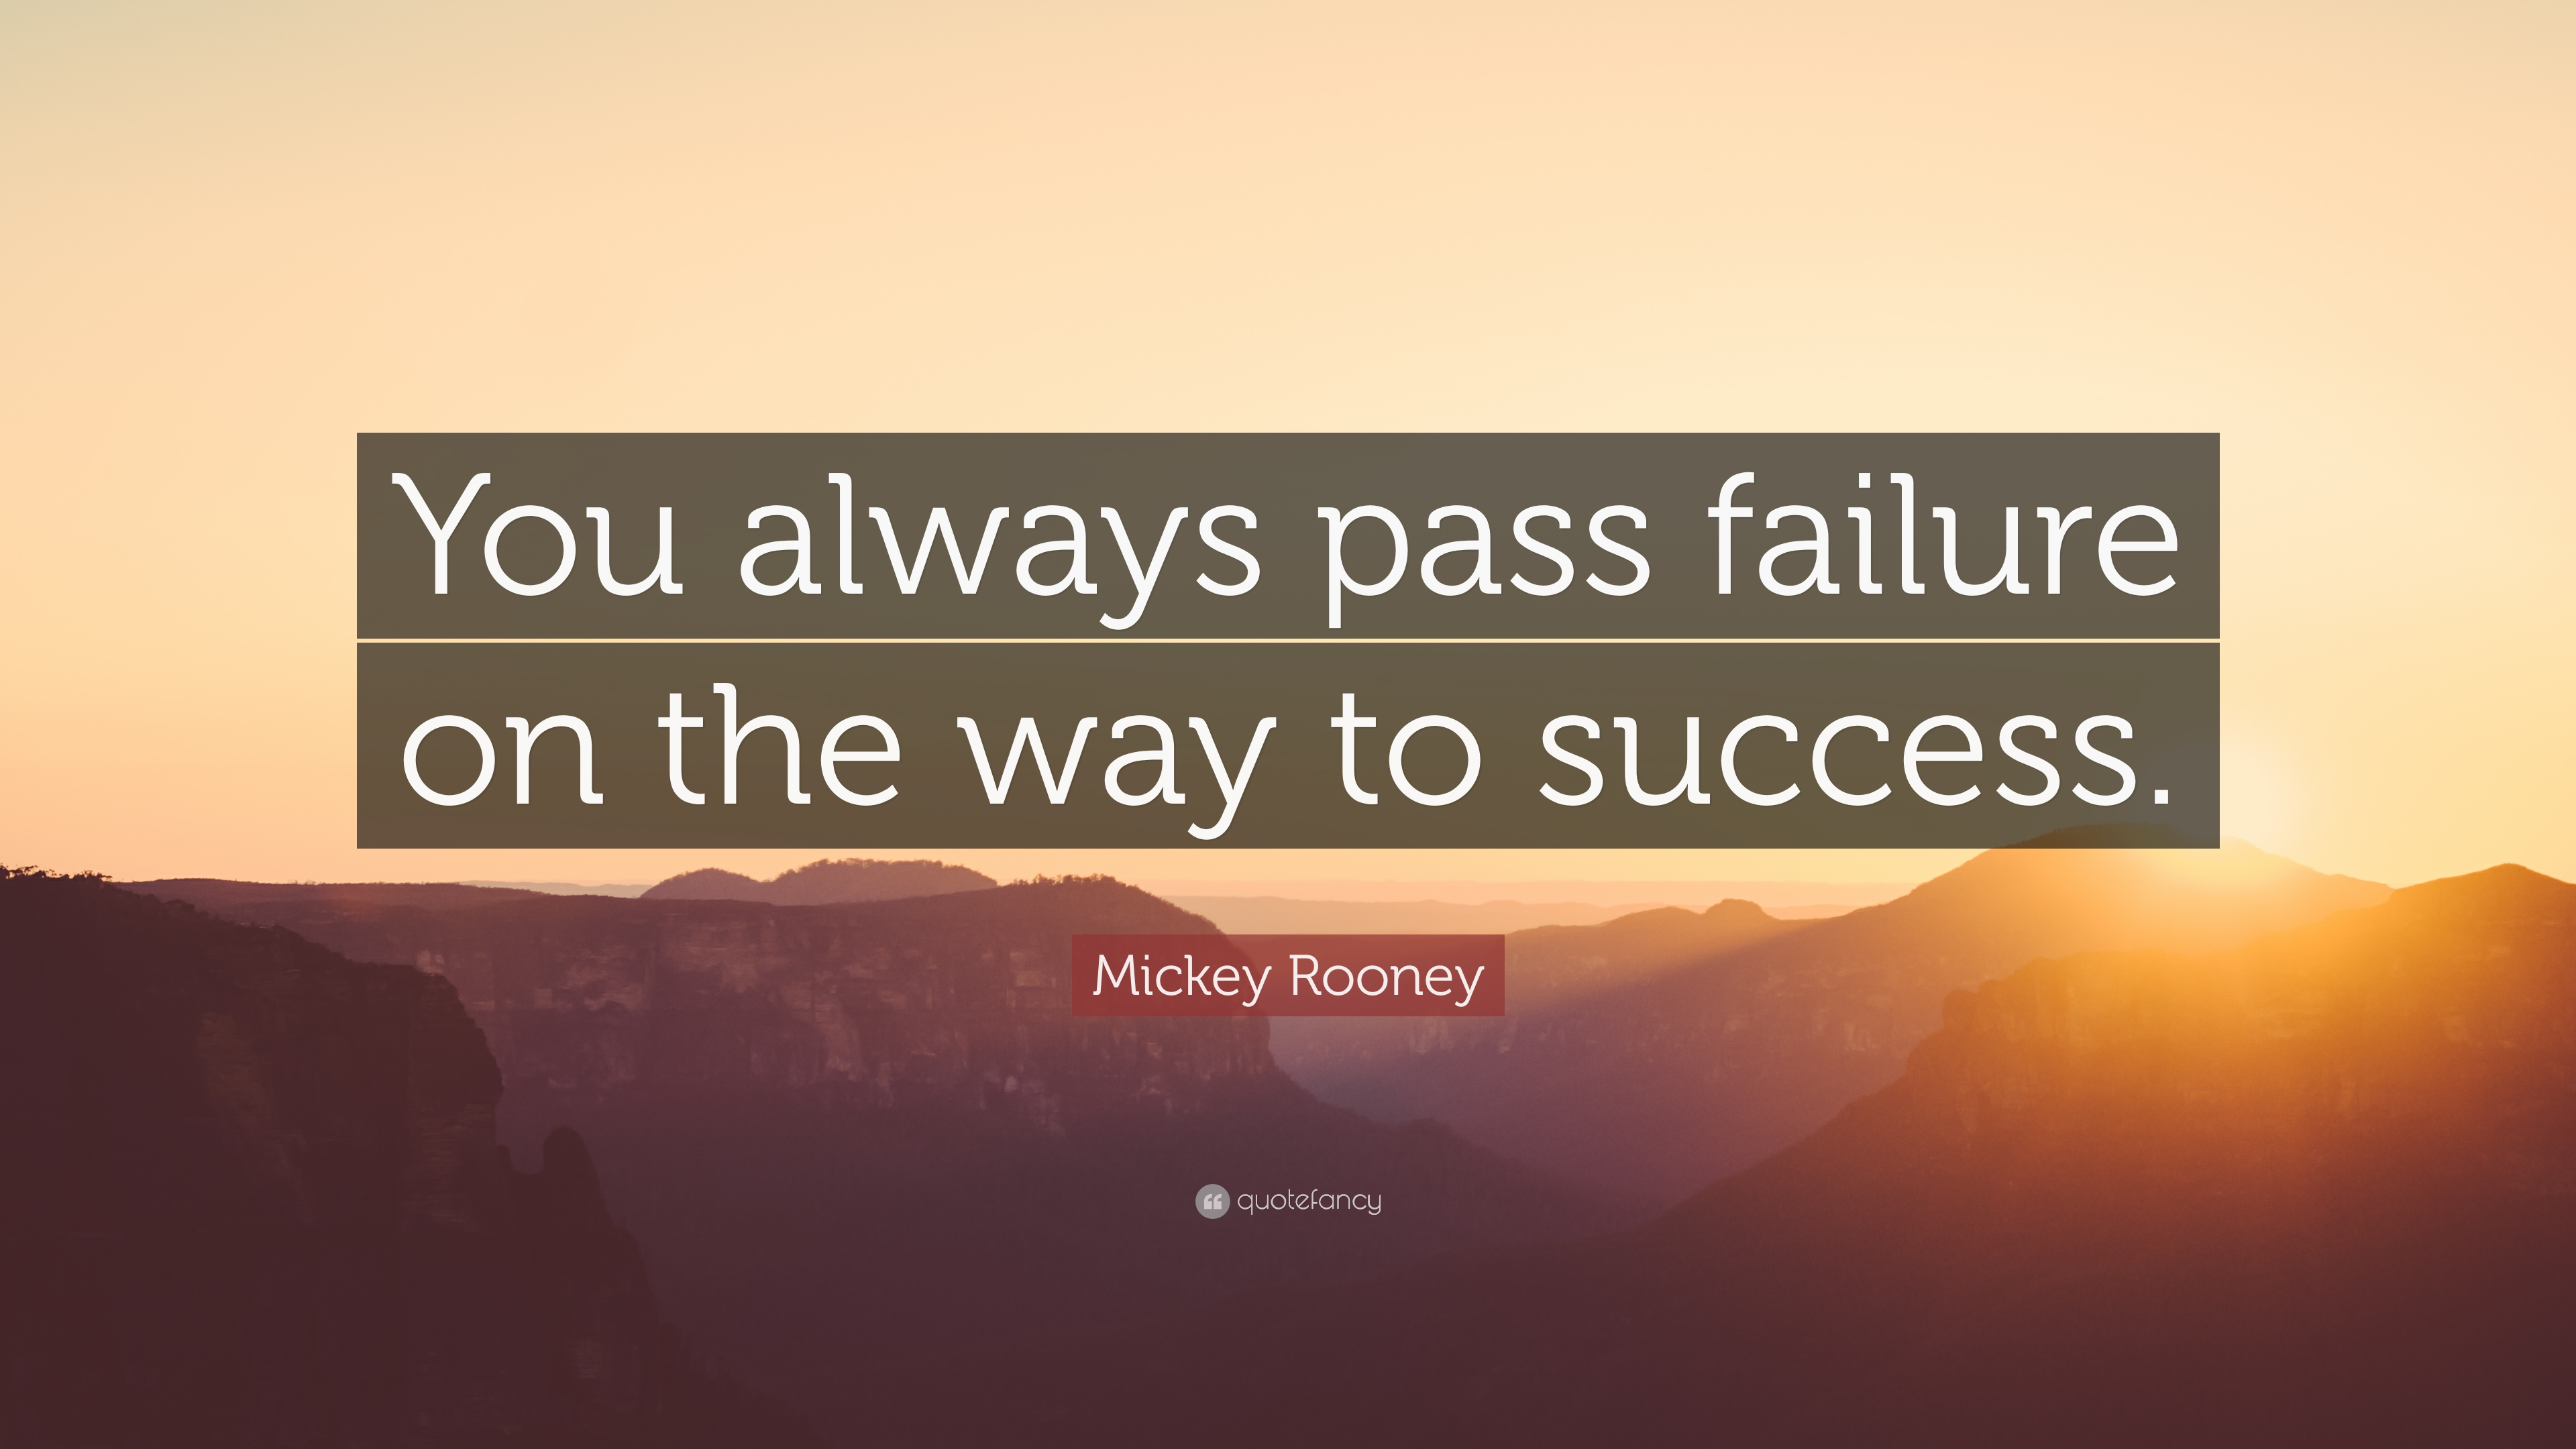 Failing His Way To Academic Success At >> Mickey Rooney Quote You Always Pass Failure On The Way To Success